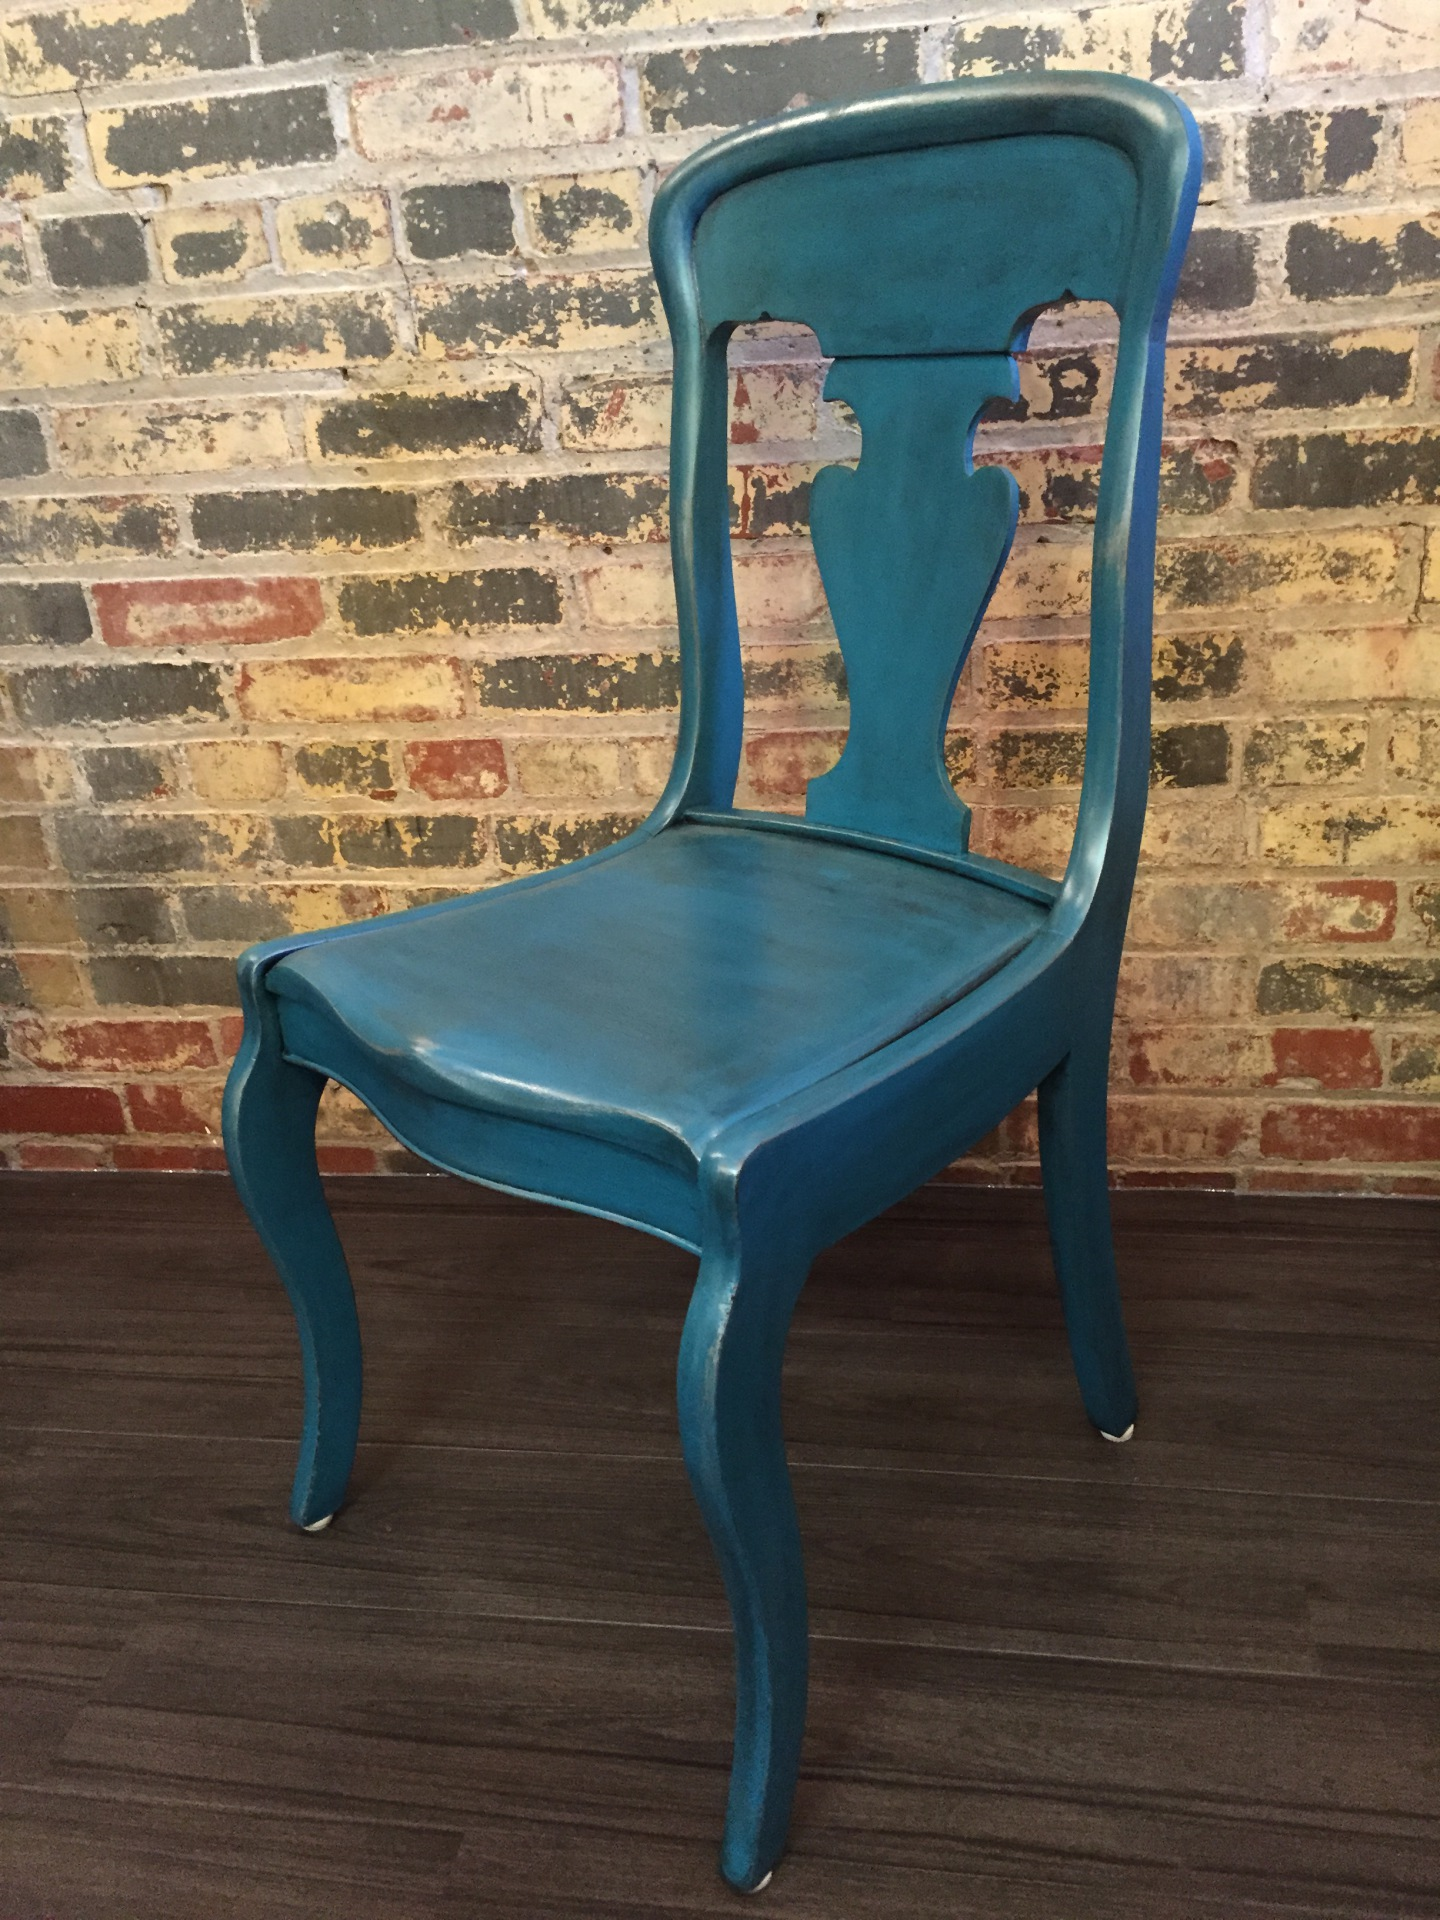 Custom Refinished Wood Chair